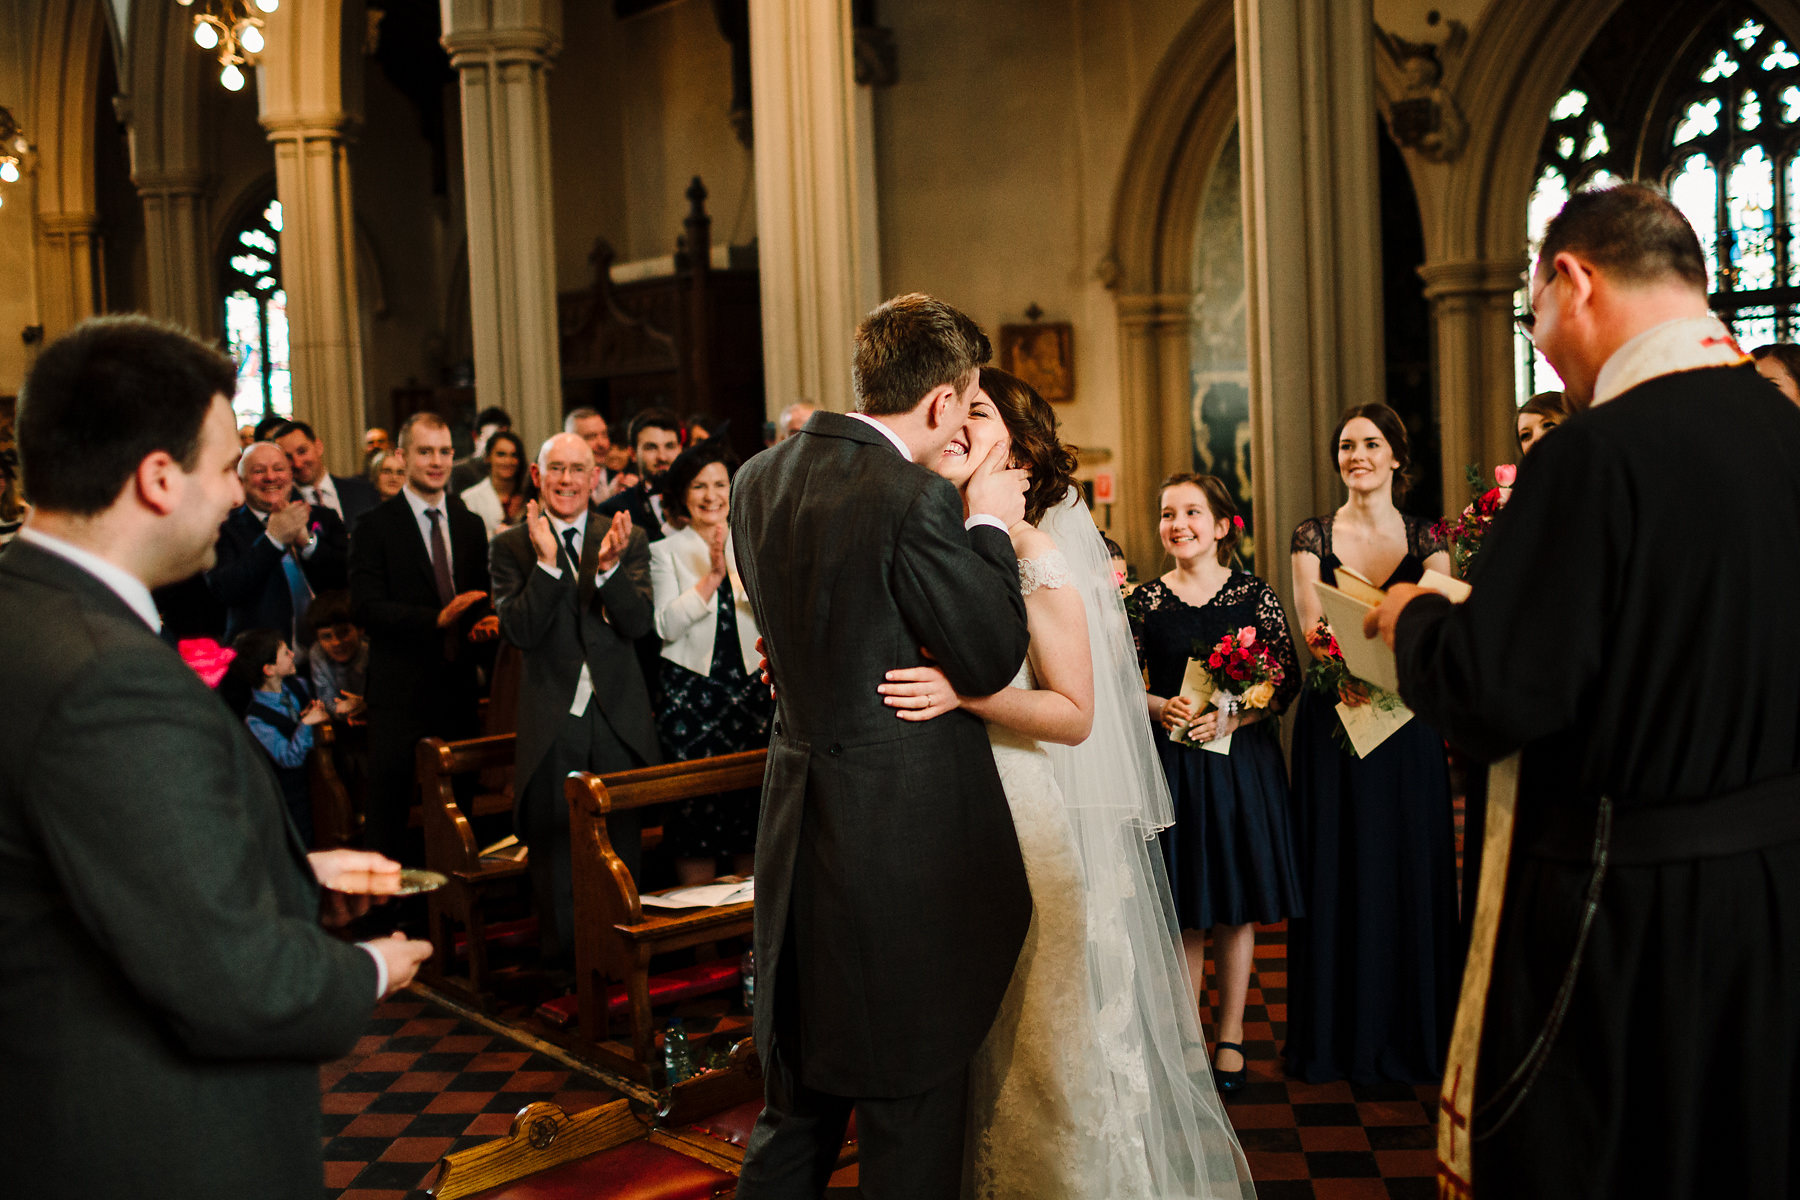 Clapham Common church wedding ceremony photography